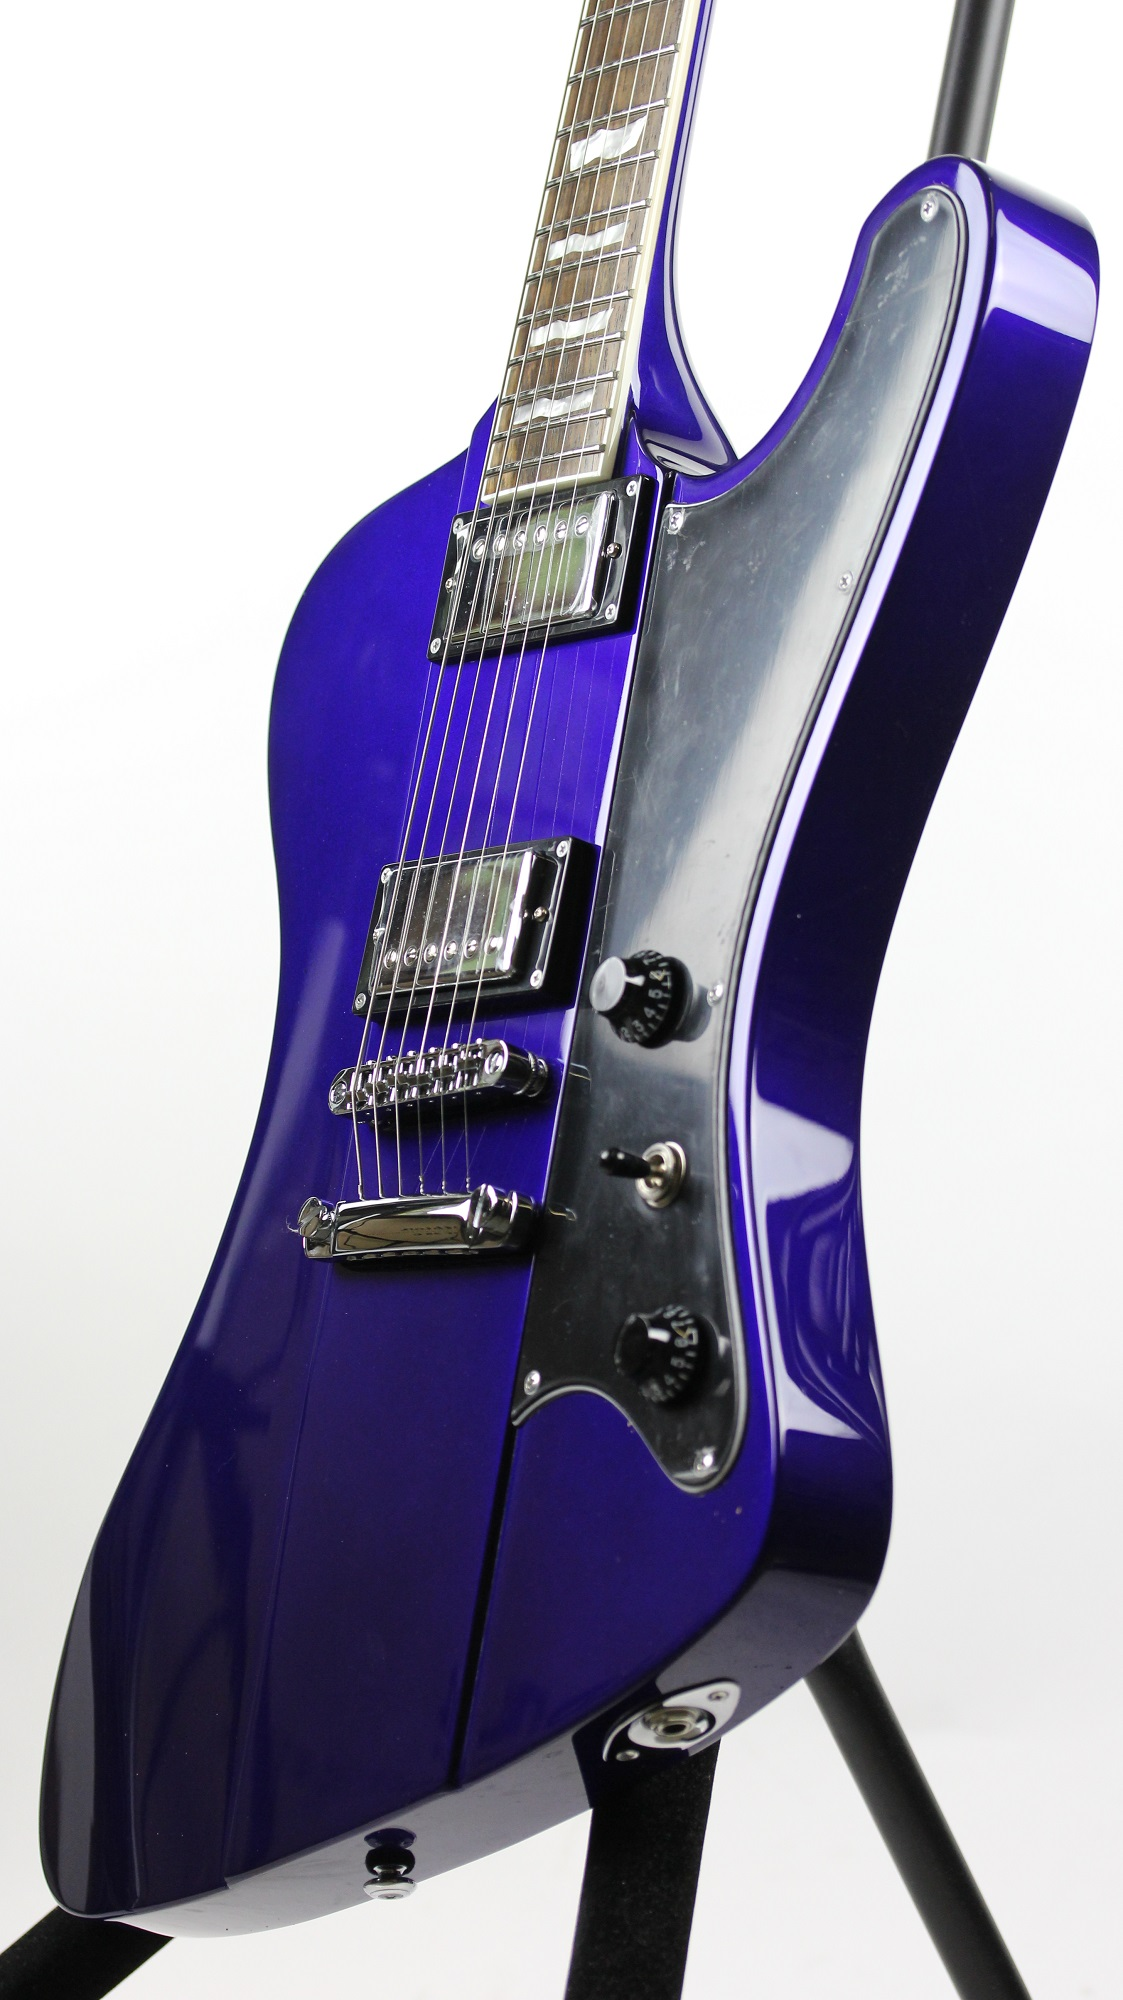 esp ltd phoenix 401 electric blue sample prototype electric guitar 6. Black Bedroom Furniture Sets. Home Design Ideas